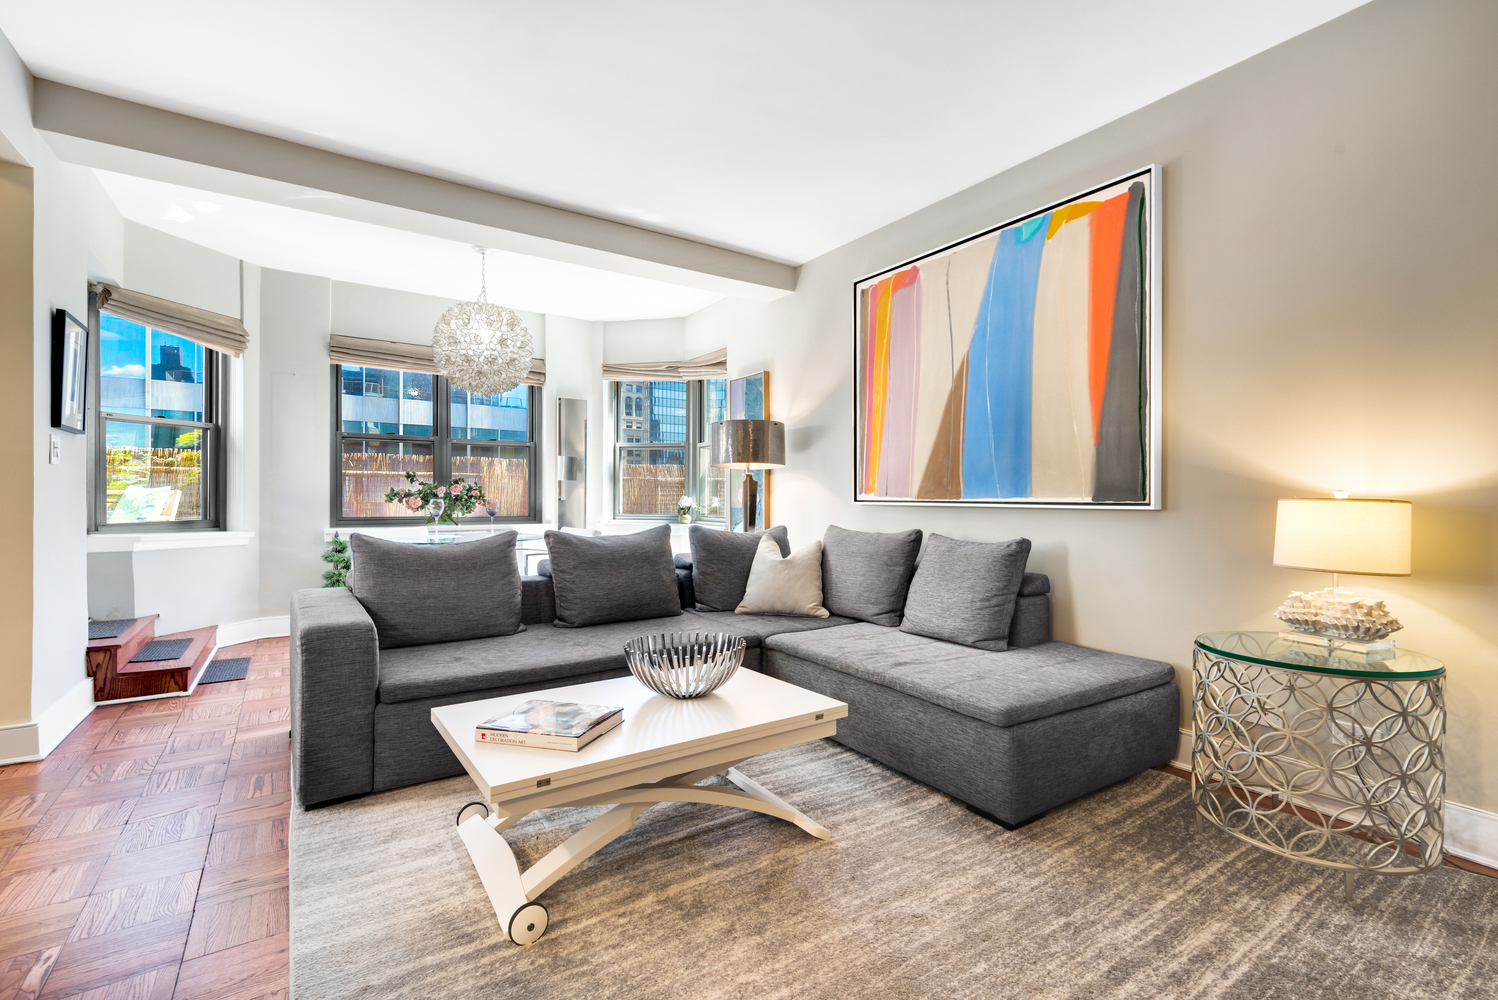 80 PARK AVENUE #19G - 2 BED | 2 BATH | MURRAY HILL | $1,525,000